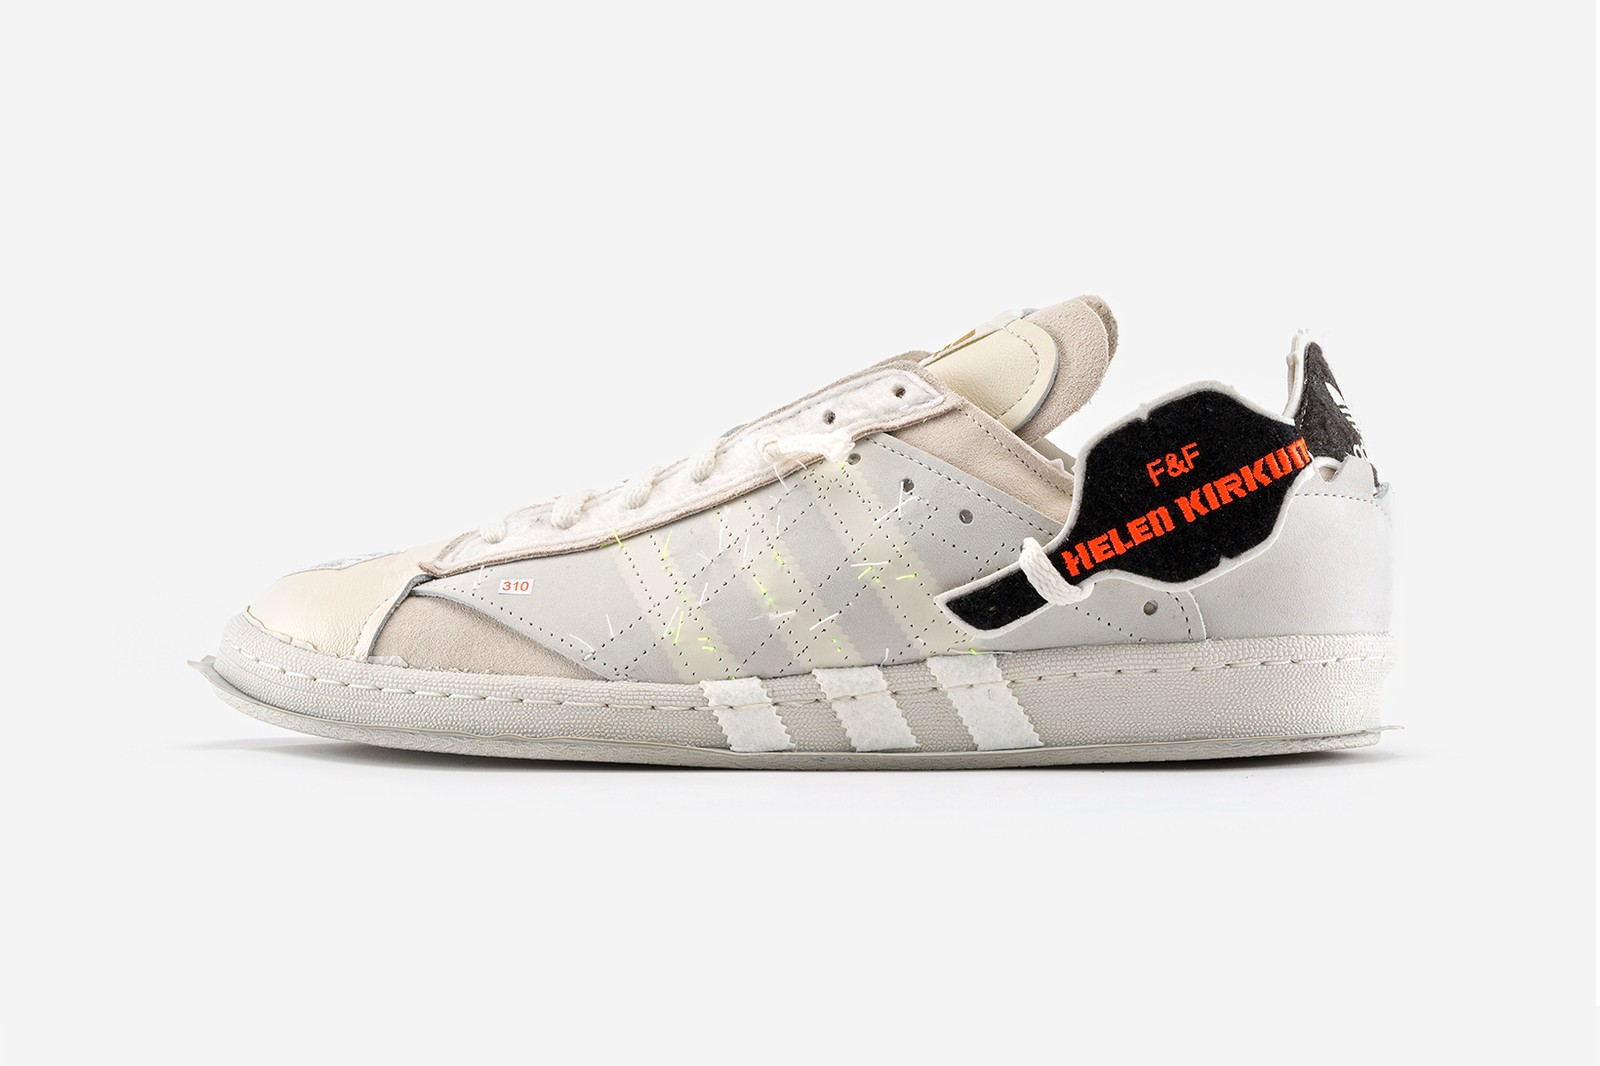 Helen Kirkum adidas Originals Campus 80 Sneakers collaboration makerlab